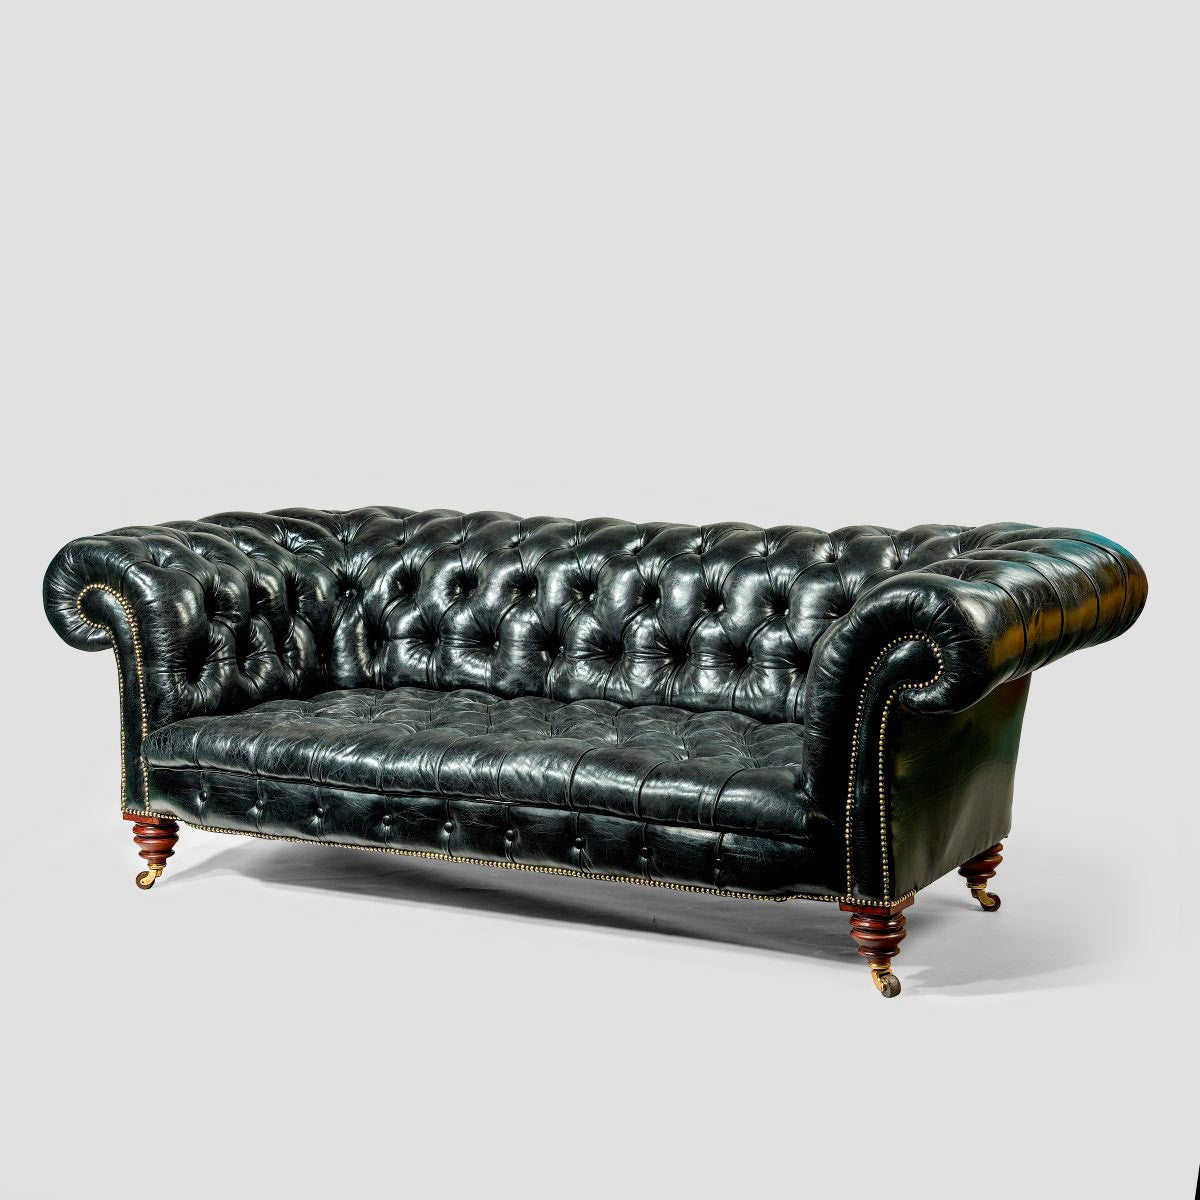 A Pair Of Black Leather Chesterfield Sofas By Shoolbred At 1stdibs